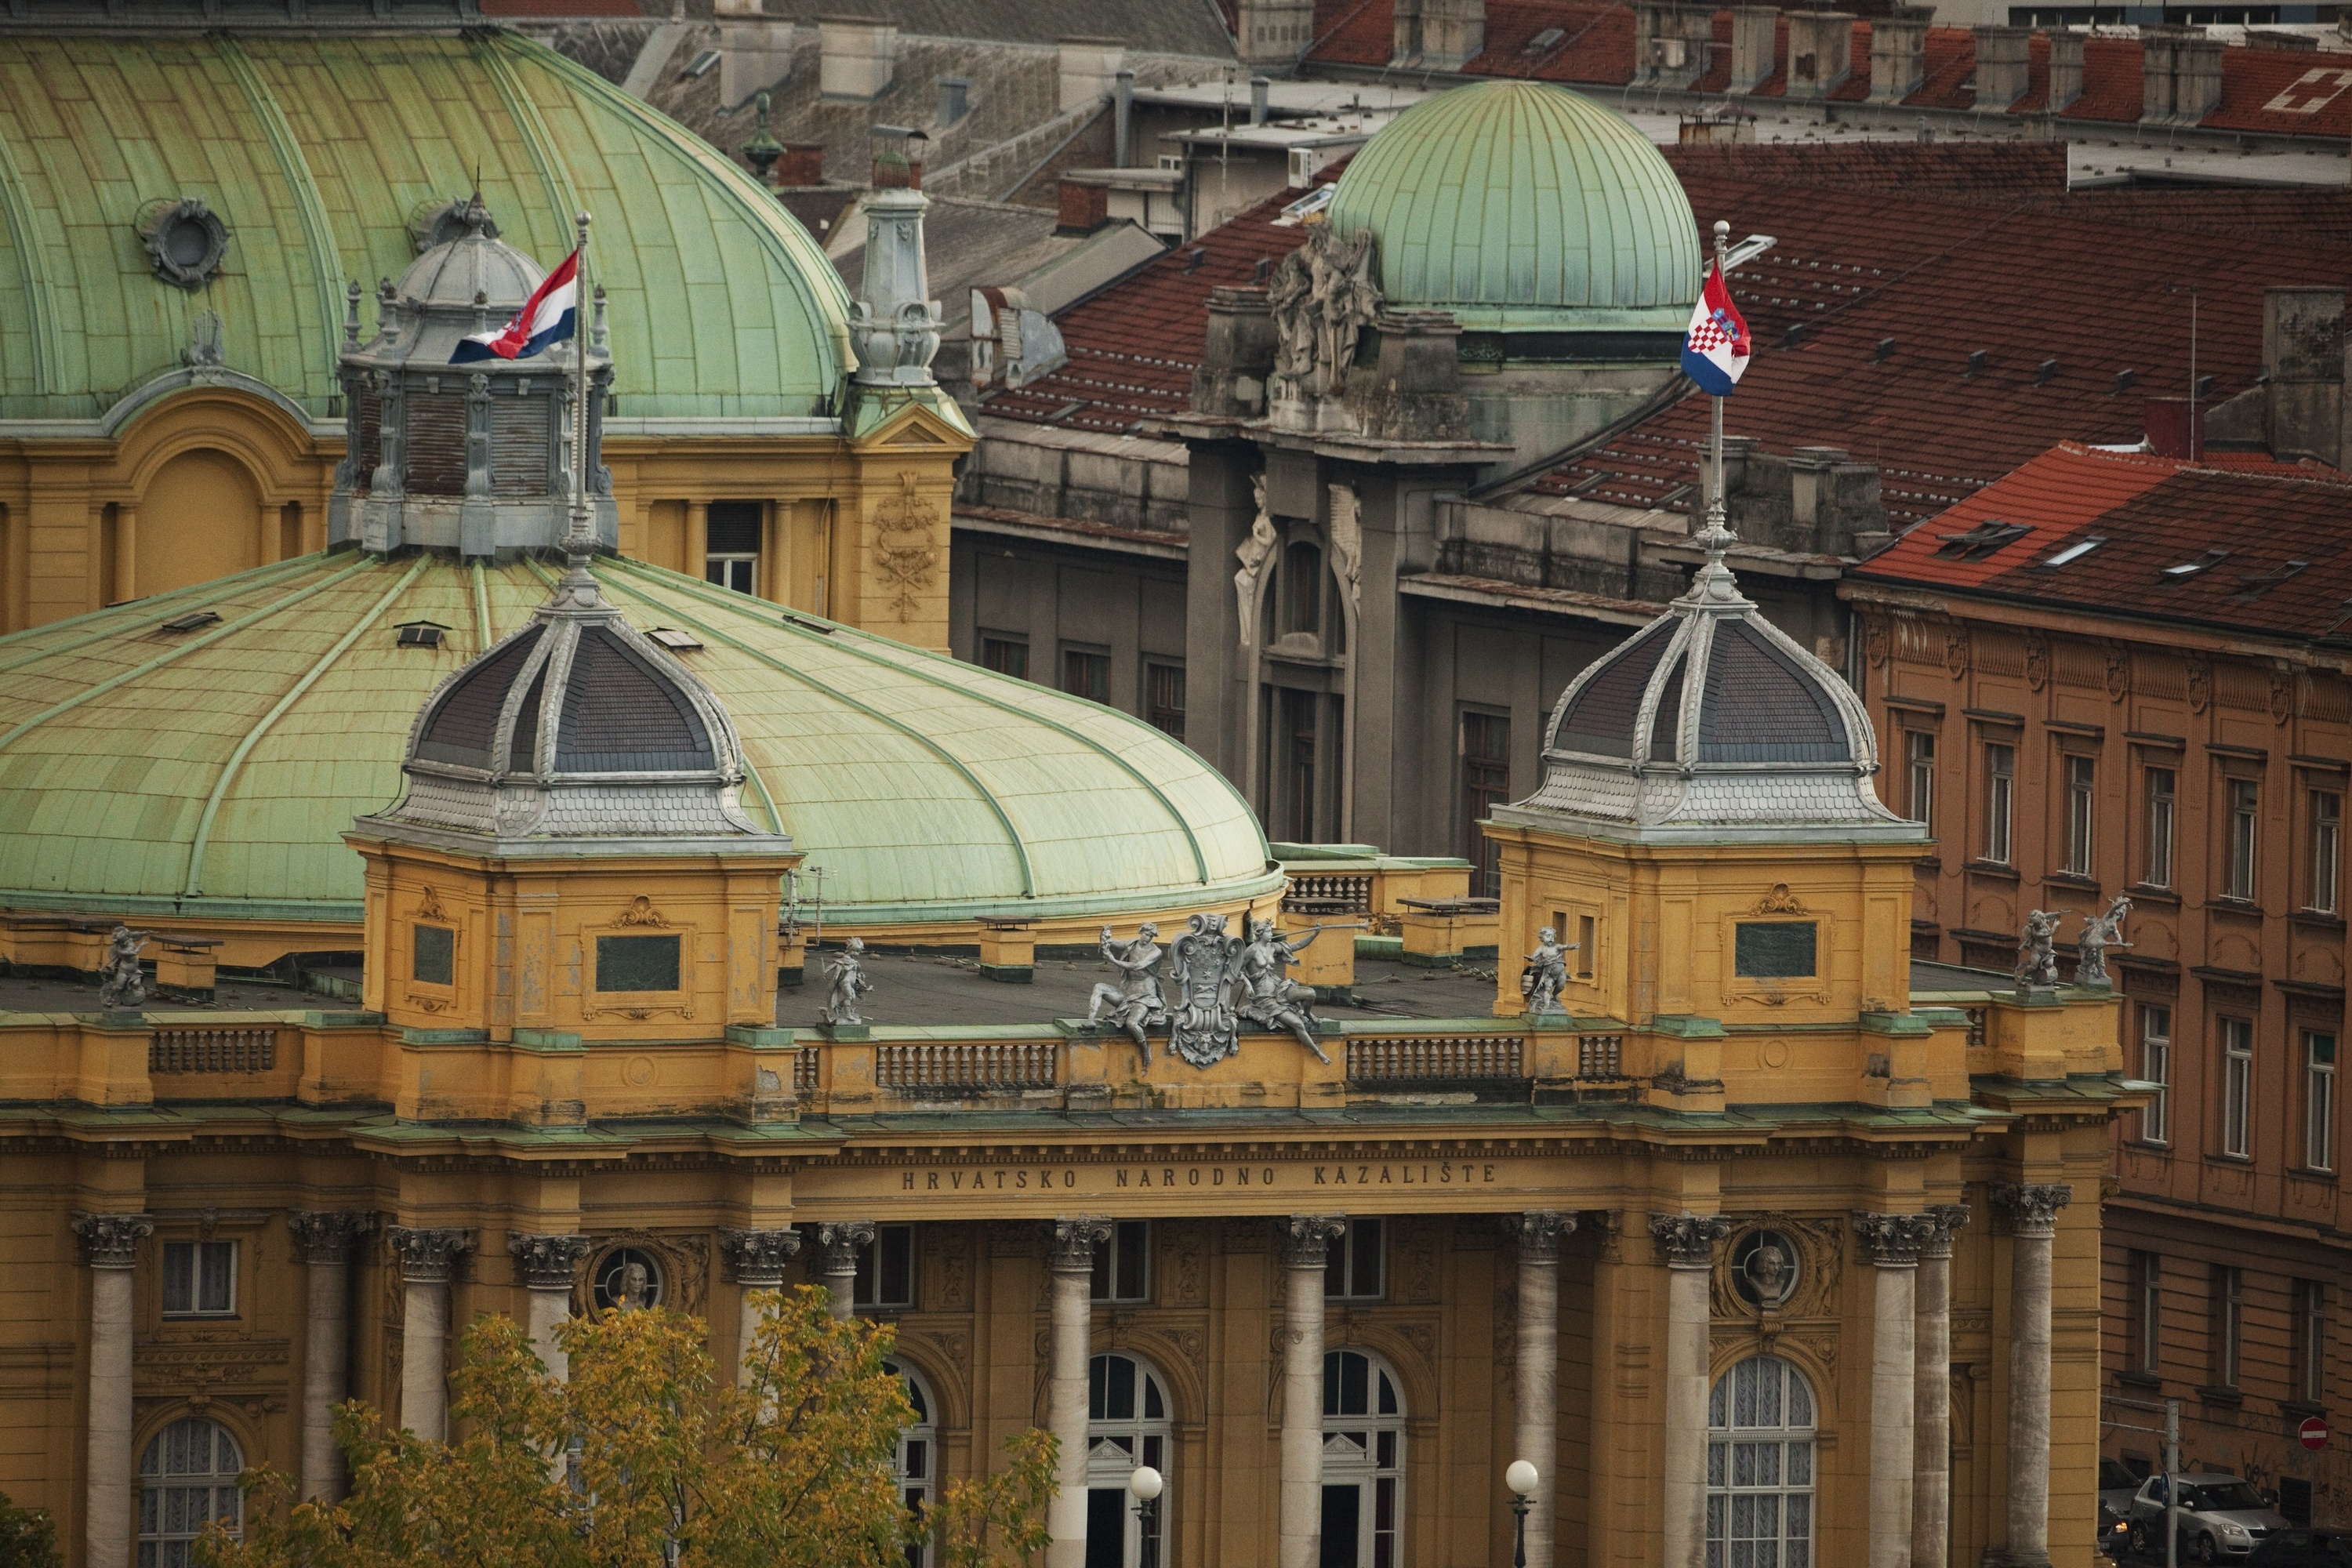 Croatian National Theatre